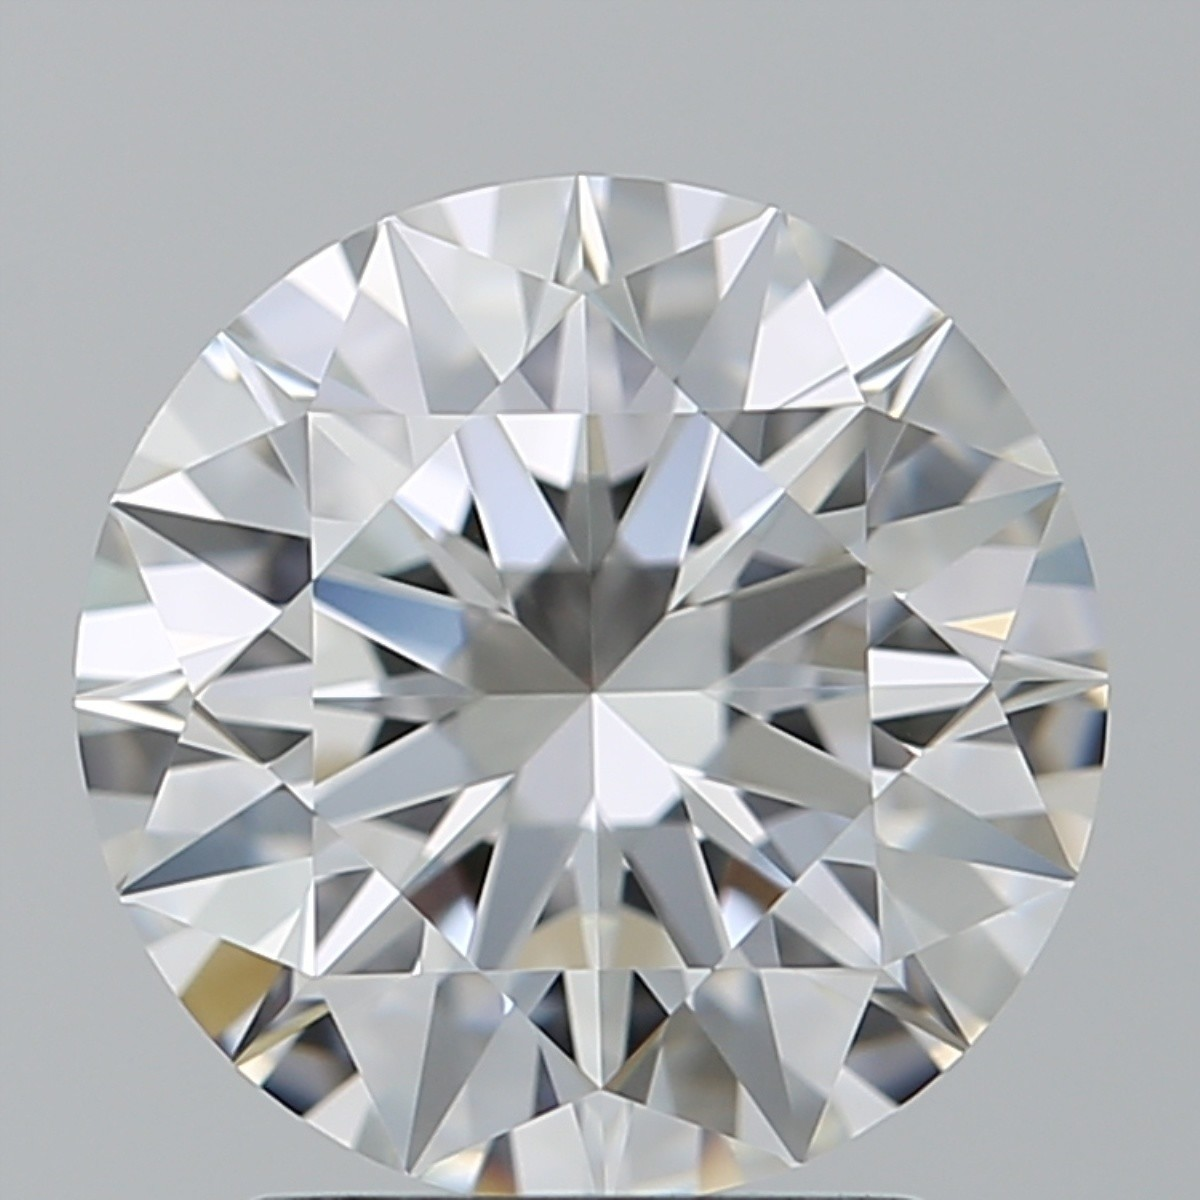 2.17 Carat Round Brilliant Diamond (F/VVS1)